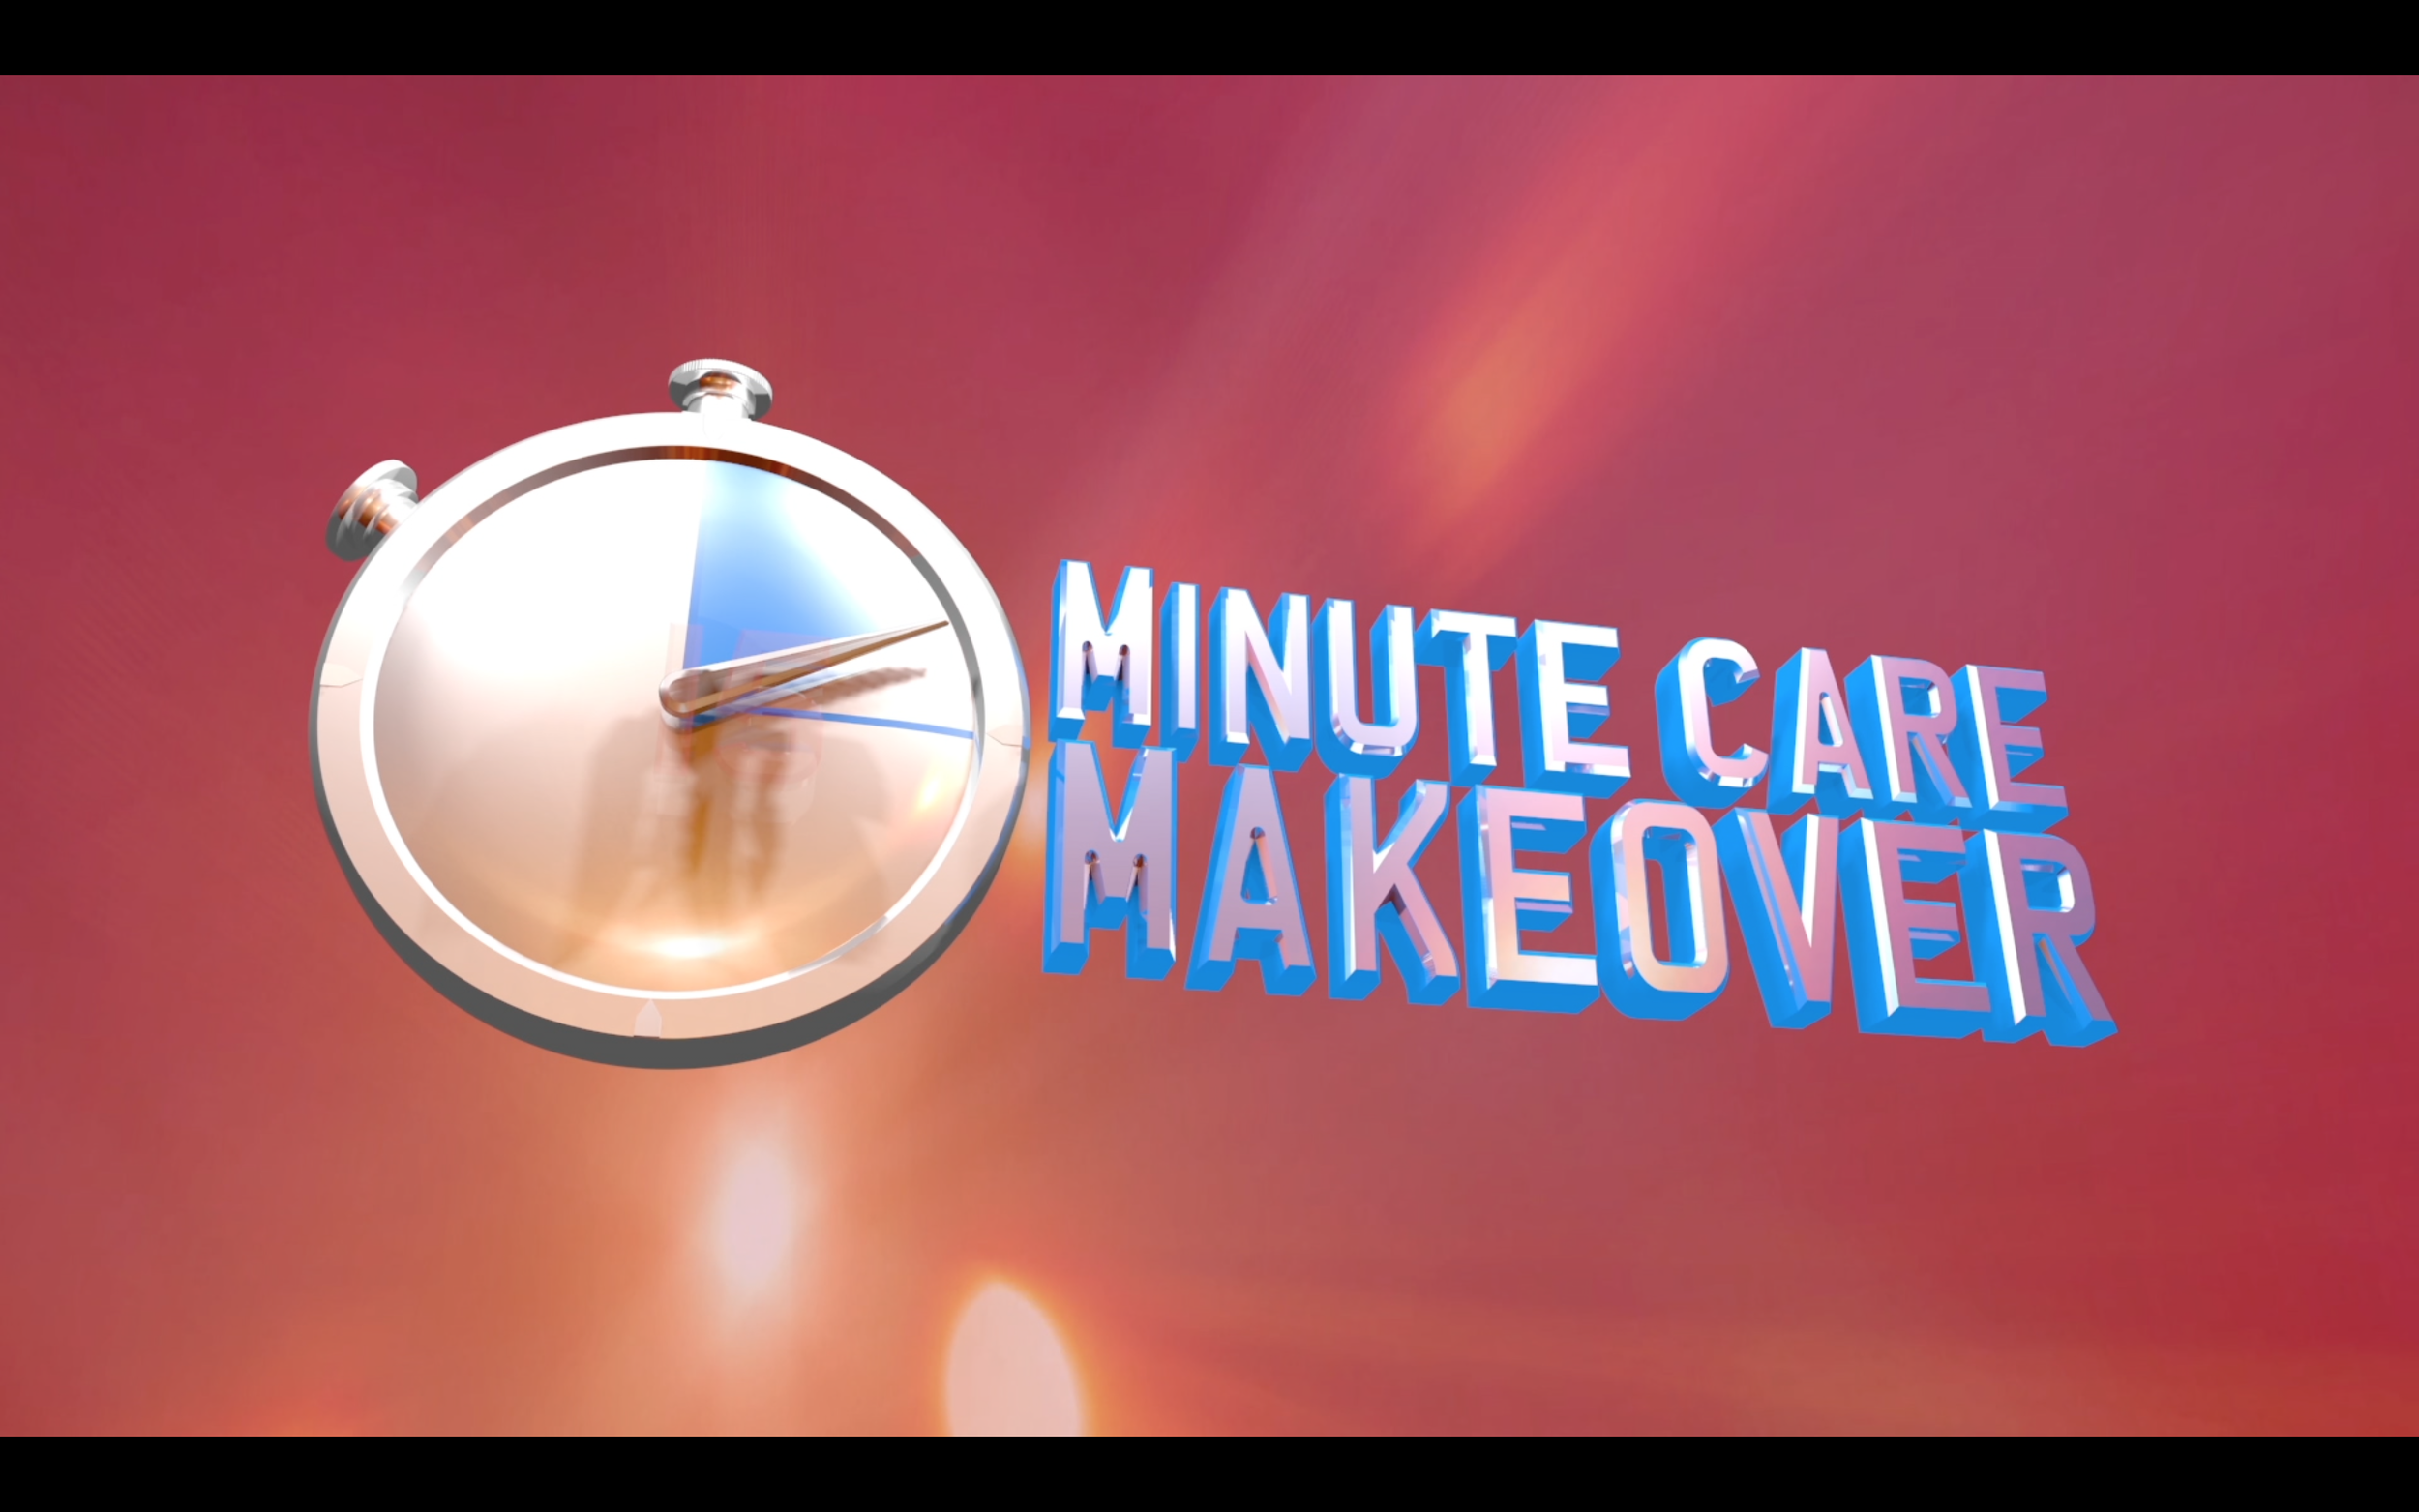 15-minute-care-makeover